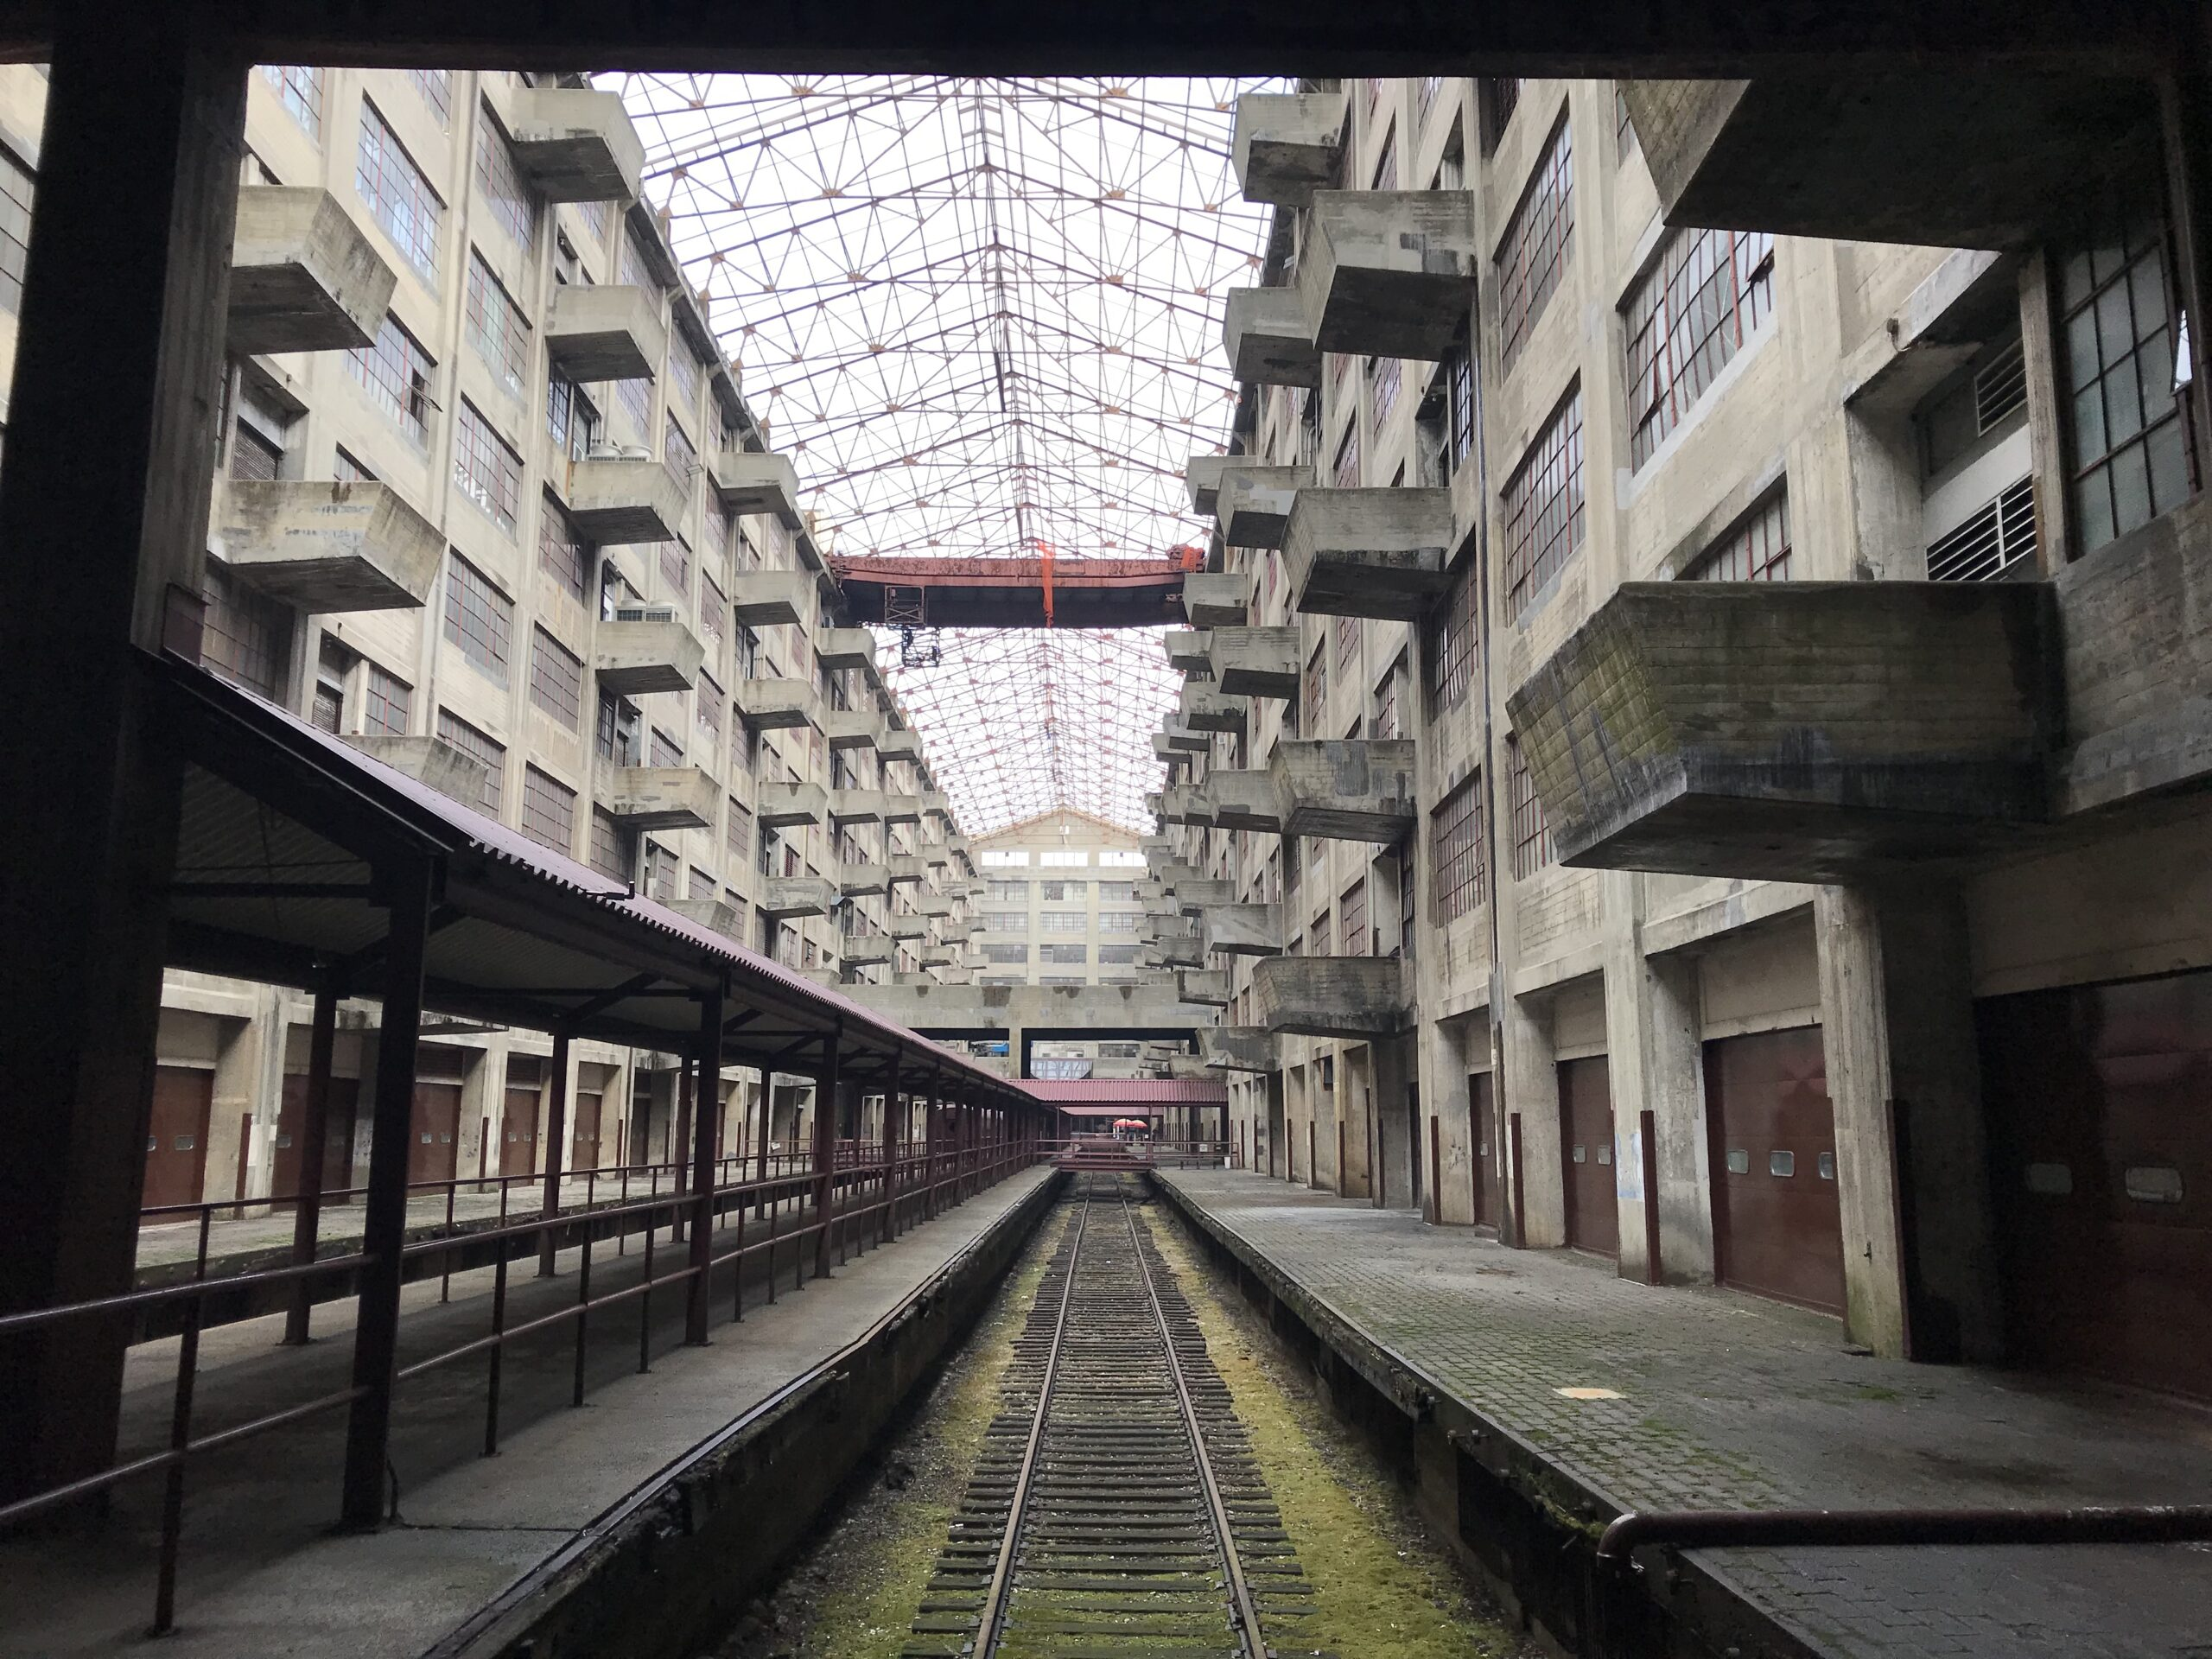 Atrium of the Brooklyn Army Terminal showing railroad tracks and cantilevered balconies.